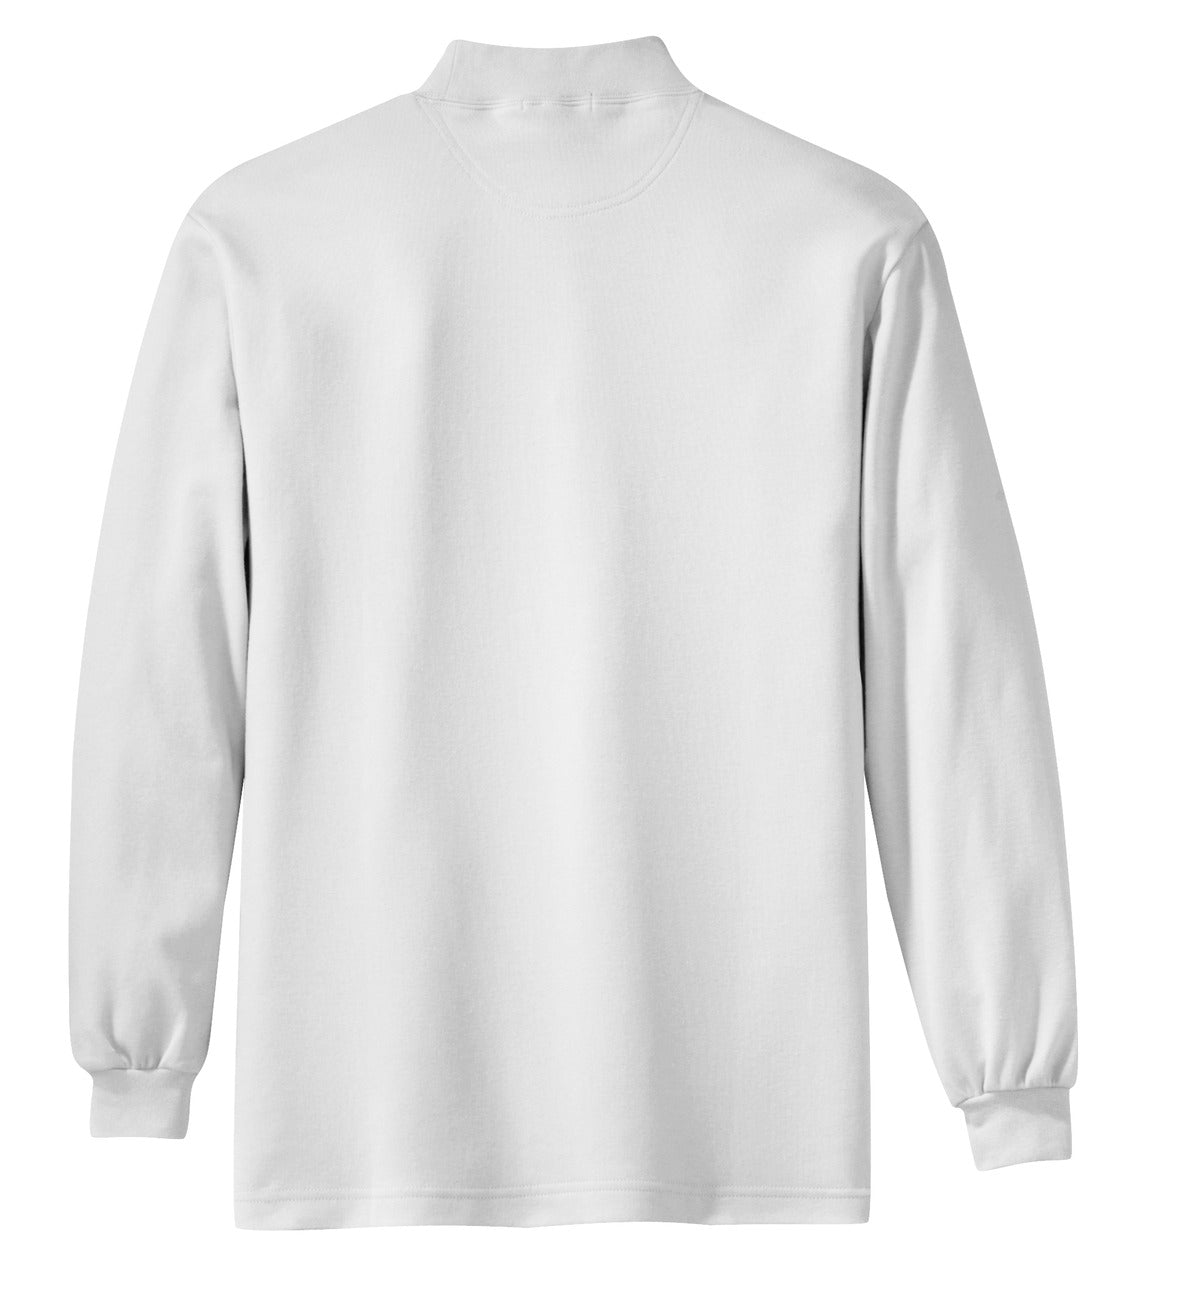 Mafoose Men's Interlock Knit Mock Turtleneck Sweaters White-Back